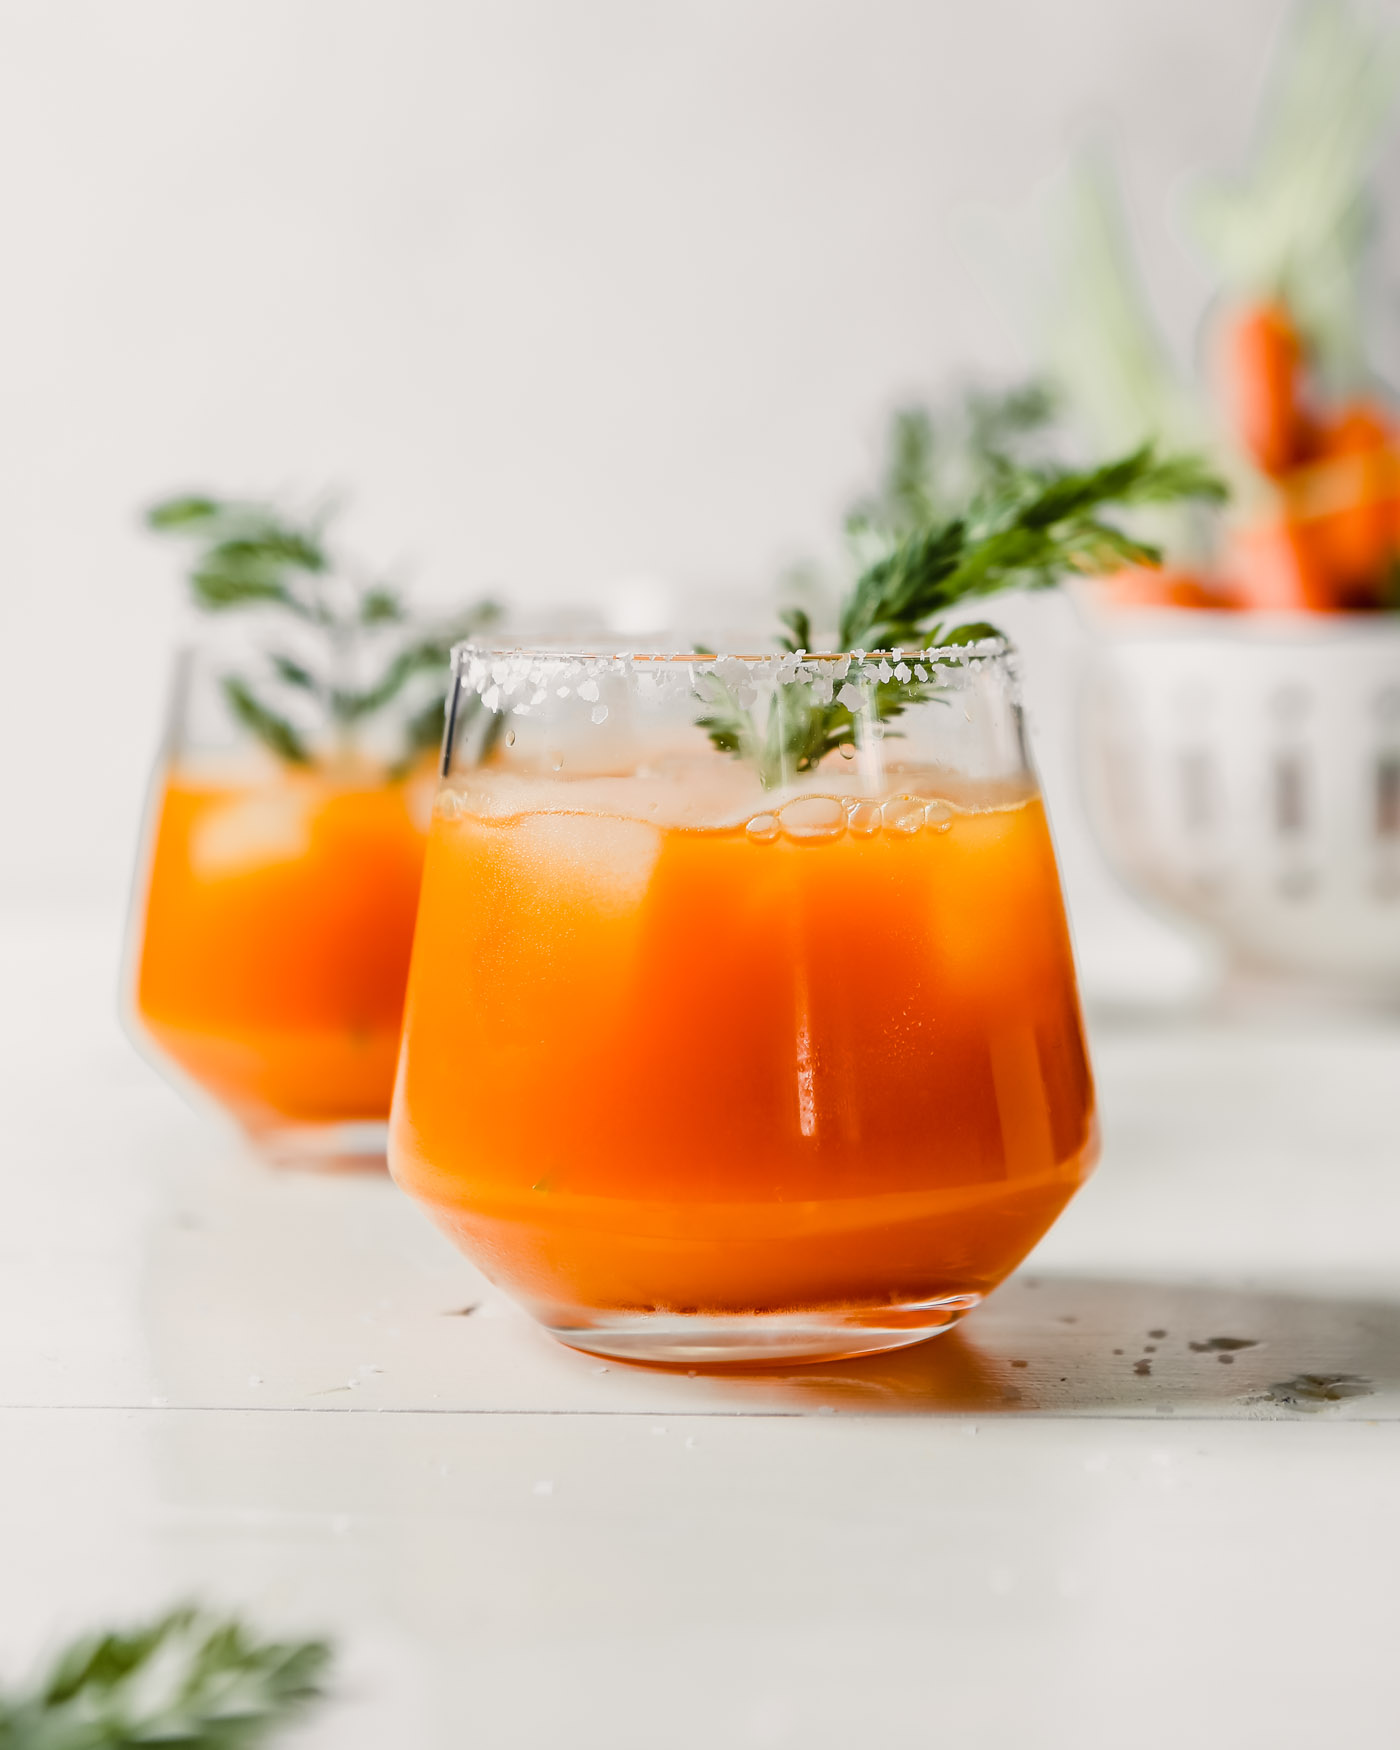 Photograph of carrot cocktails with carrot tops as garnish set on a white wood table.